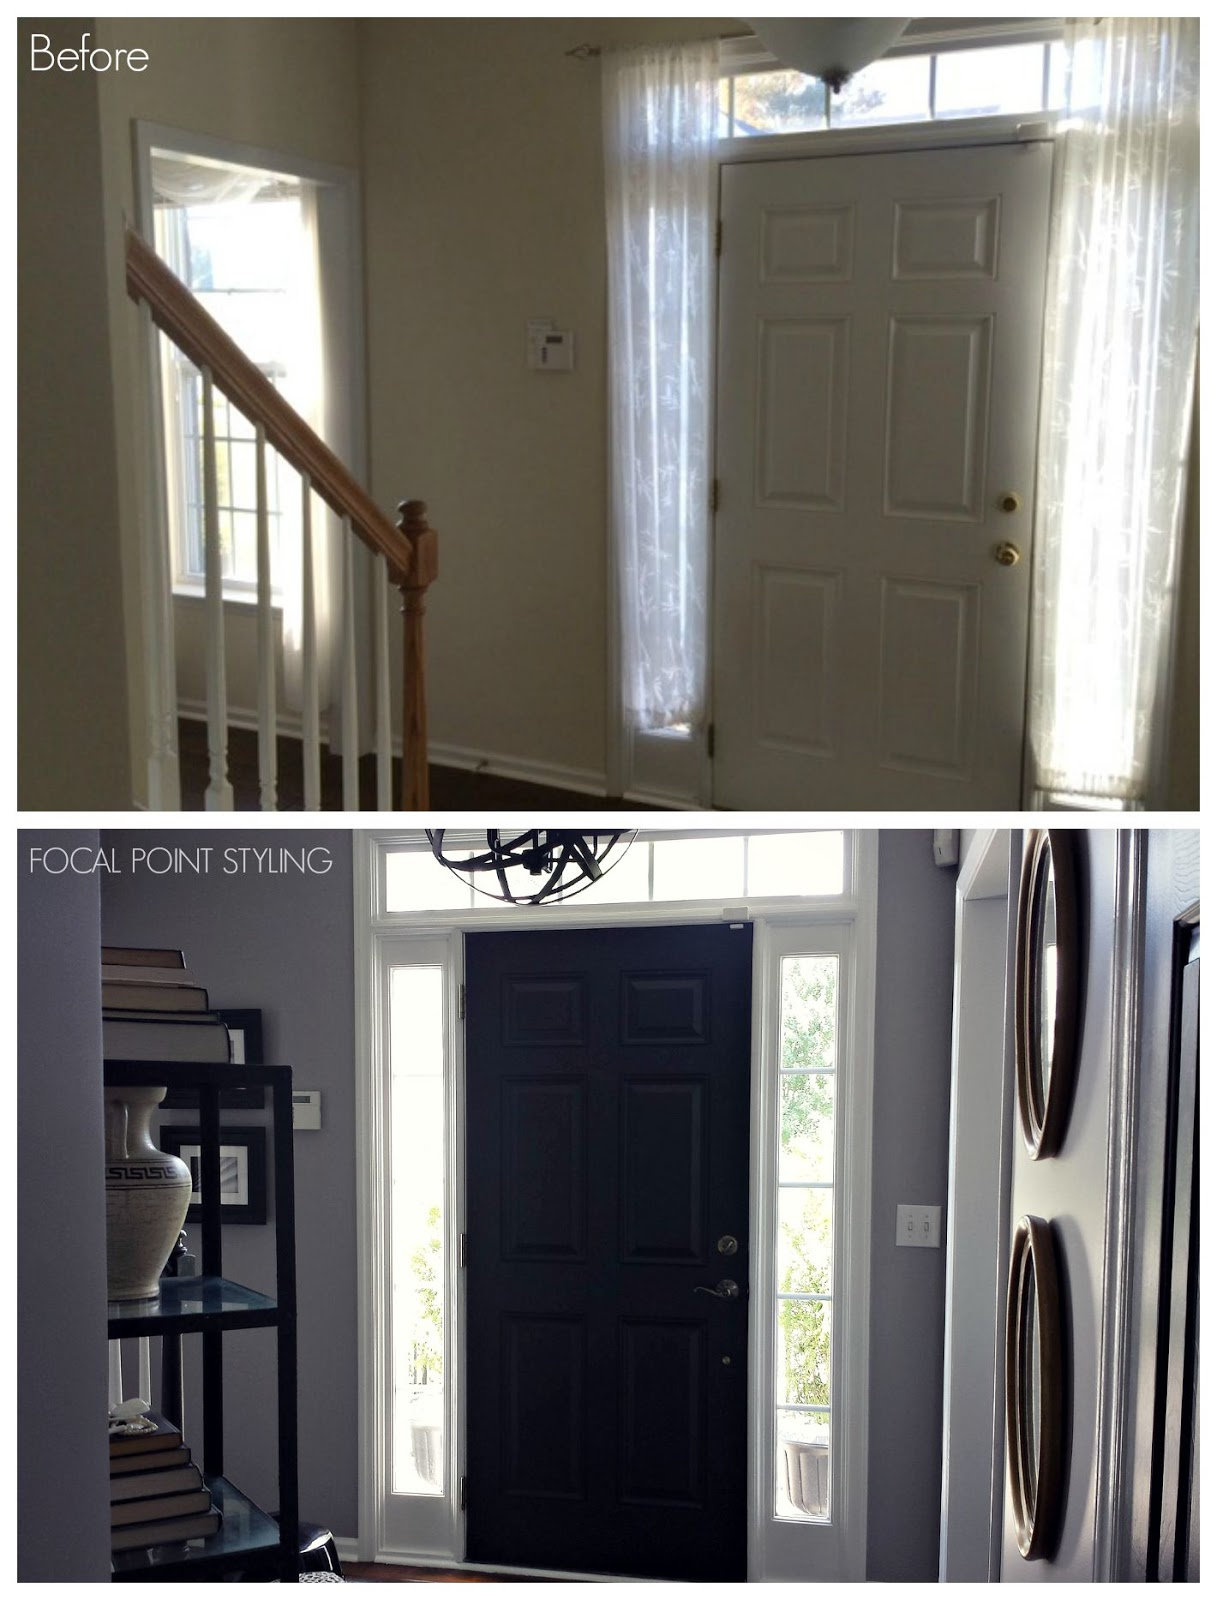 Focal point styling how to paint interior doors black update focal point styling how to paint interior doors black update brass hardware planetlyrics Choice Image